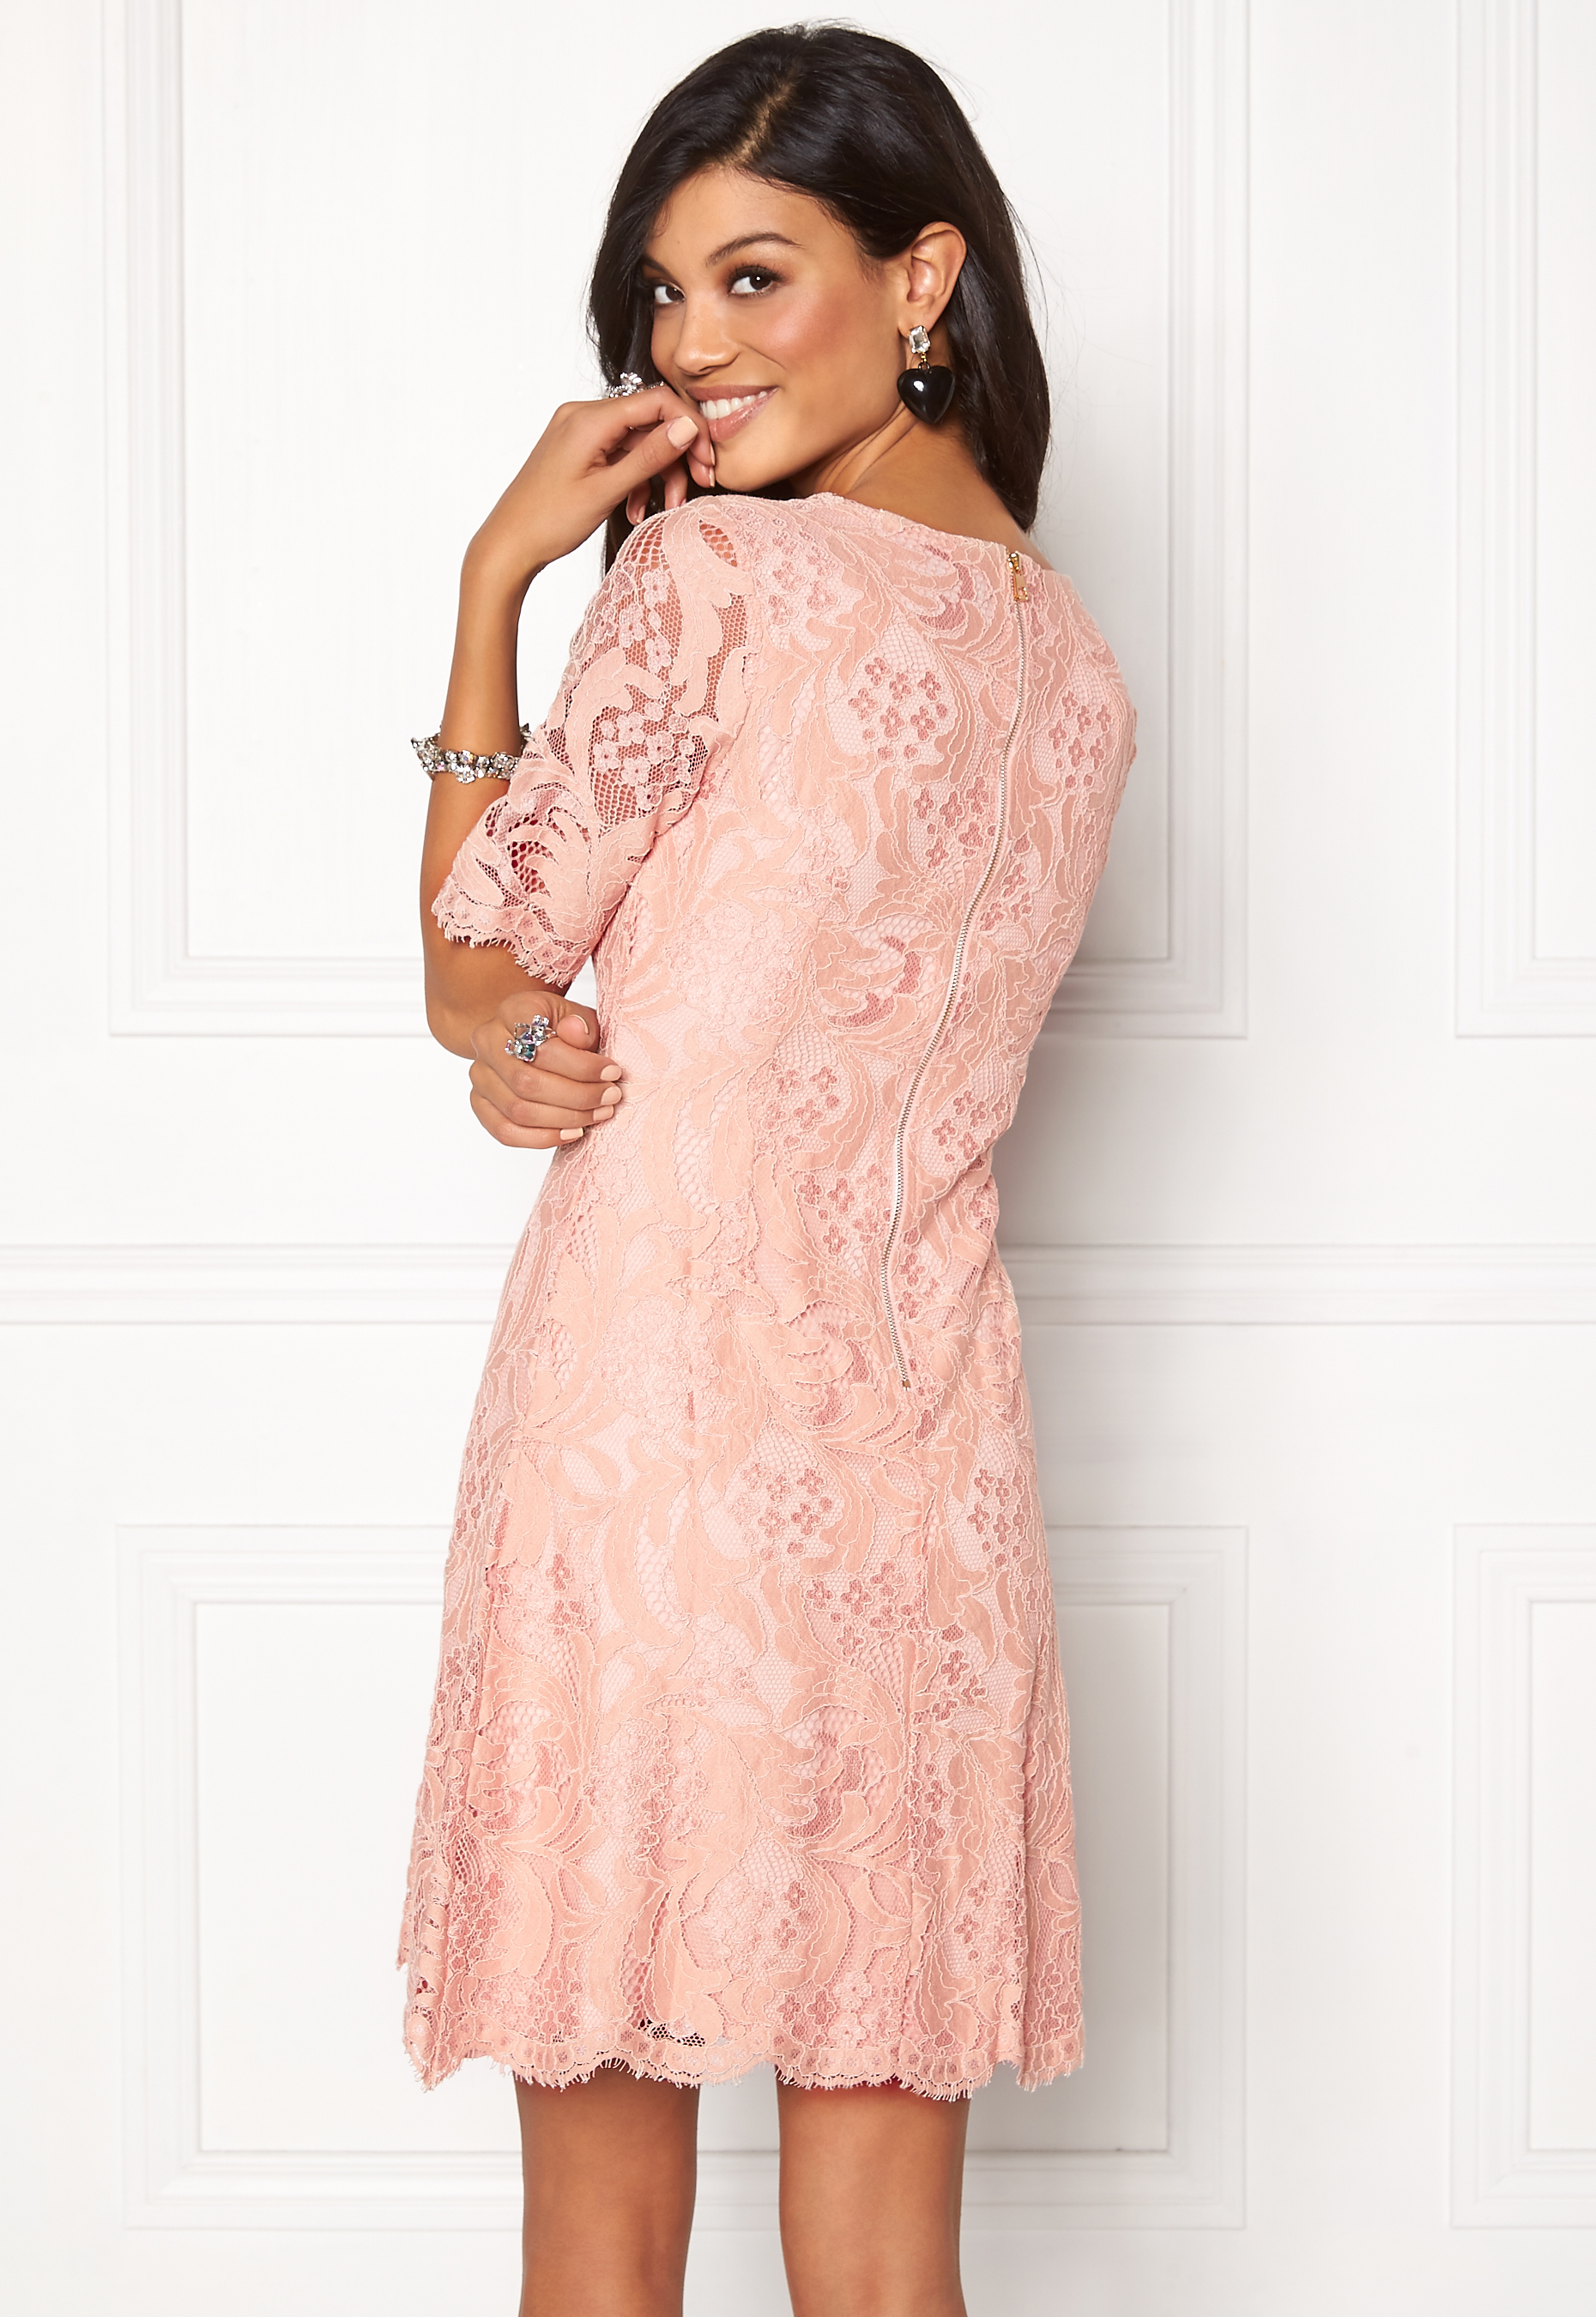 c71a8050343d2 Chiara Forthi Michelle Lace Dress Old rose / Gold - Bubbleroom